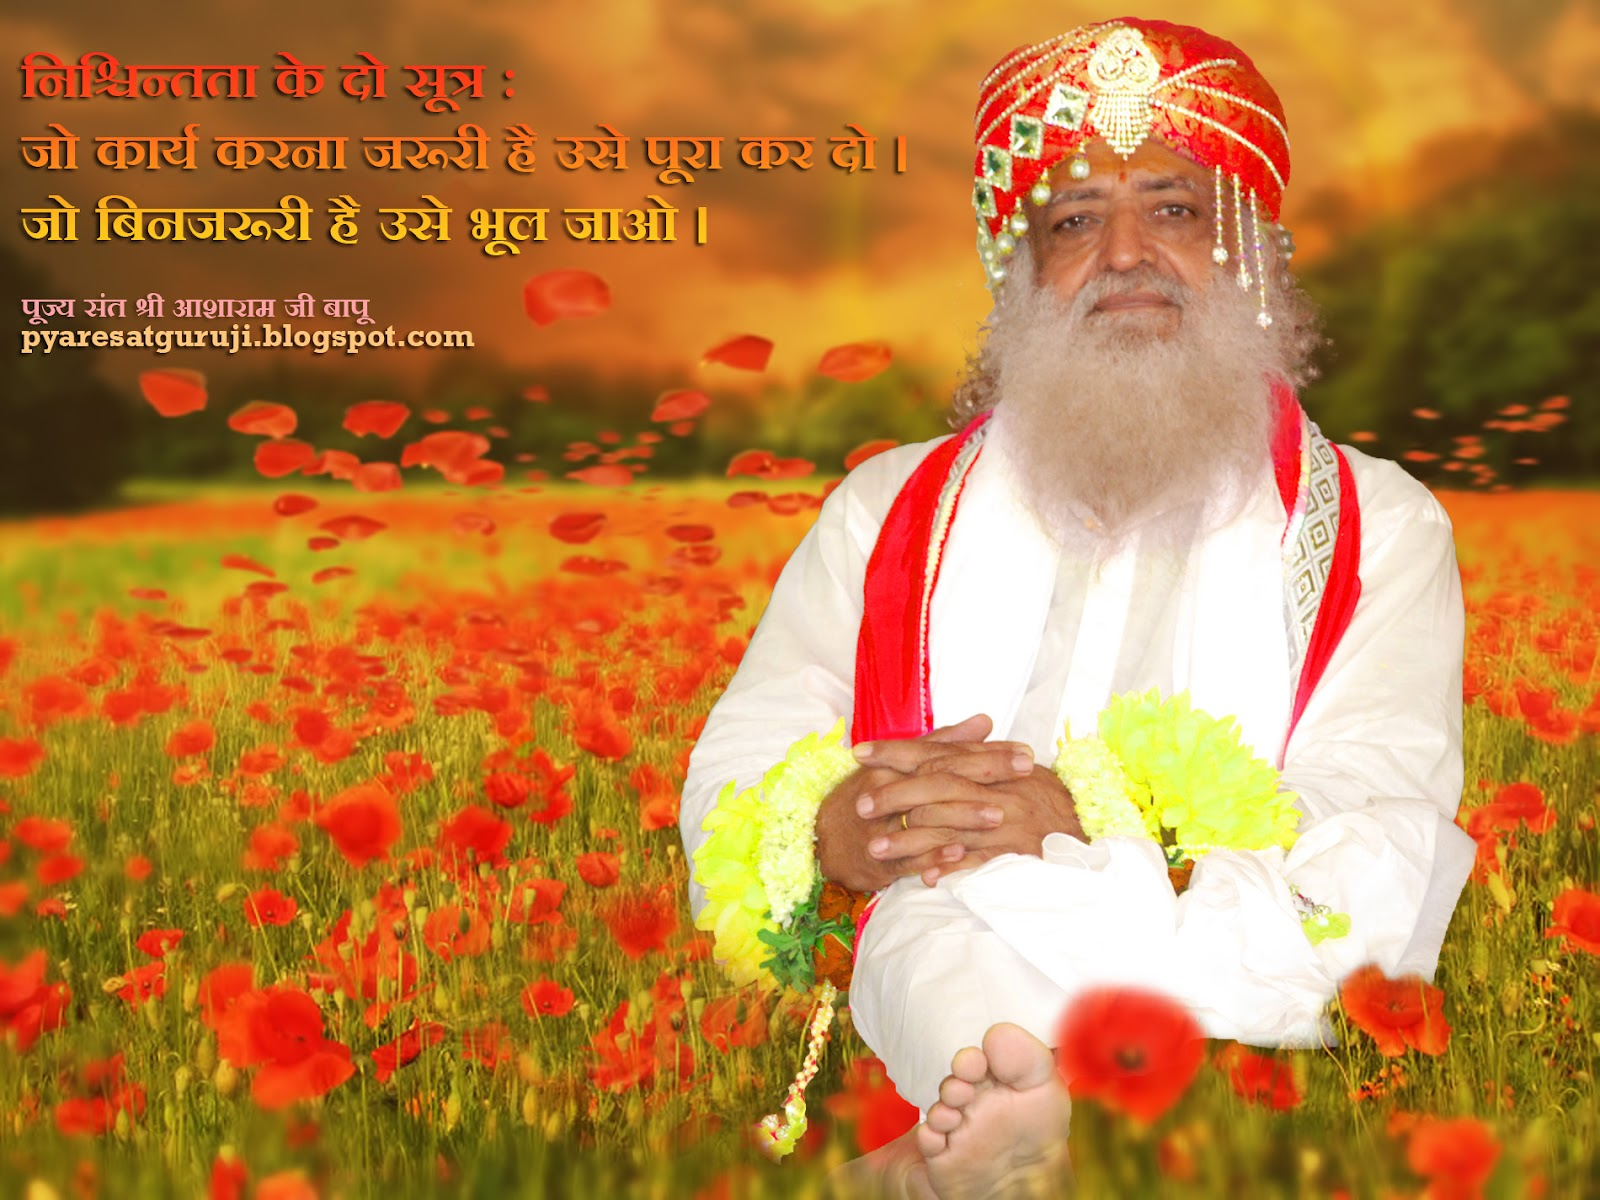 Sant Shri Asaram Bapu Ji Images Photos for free download